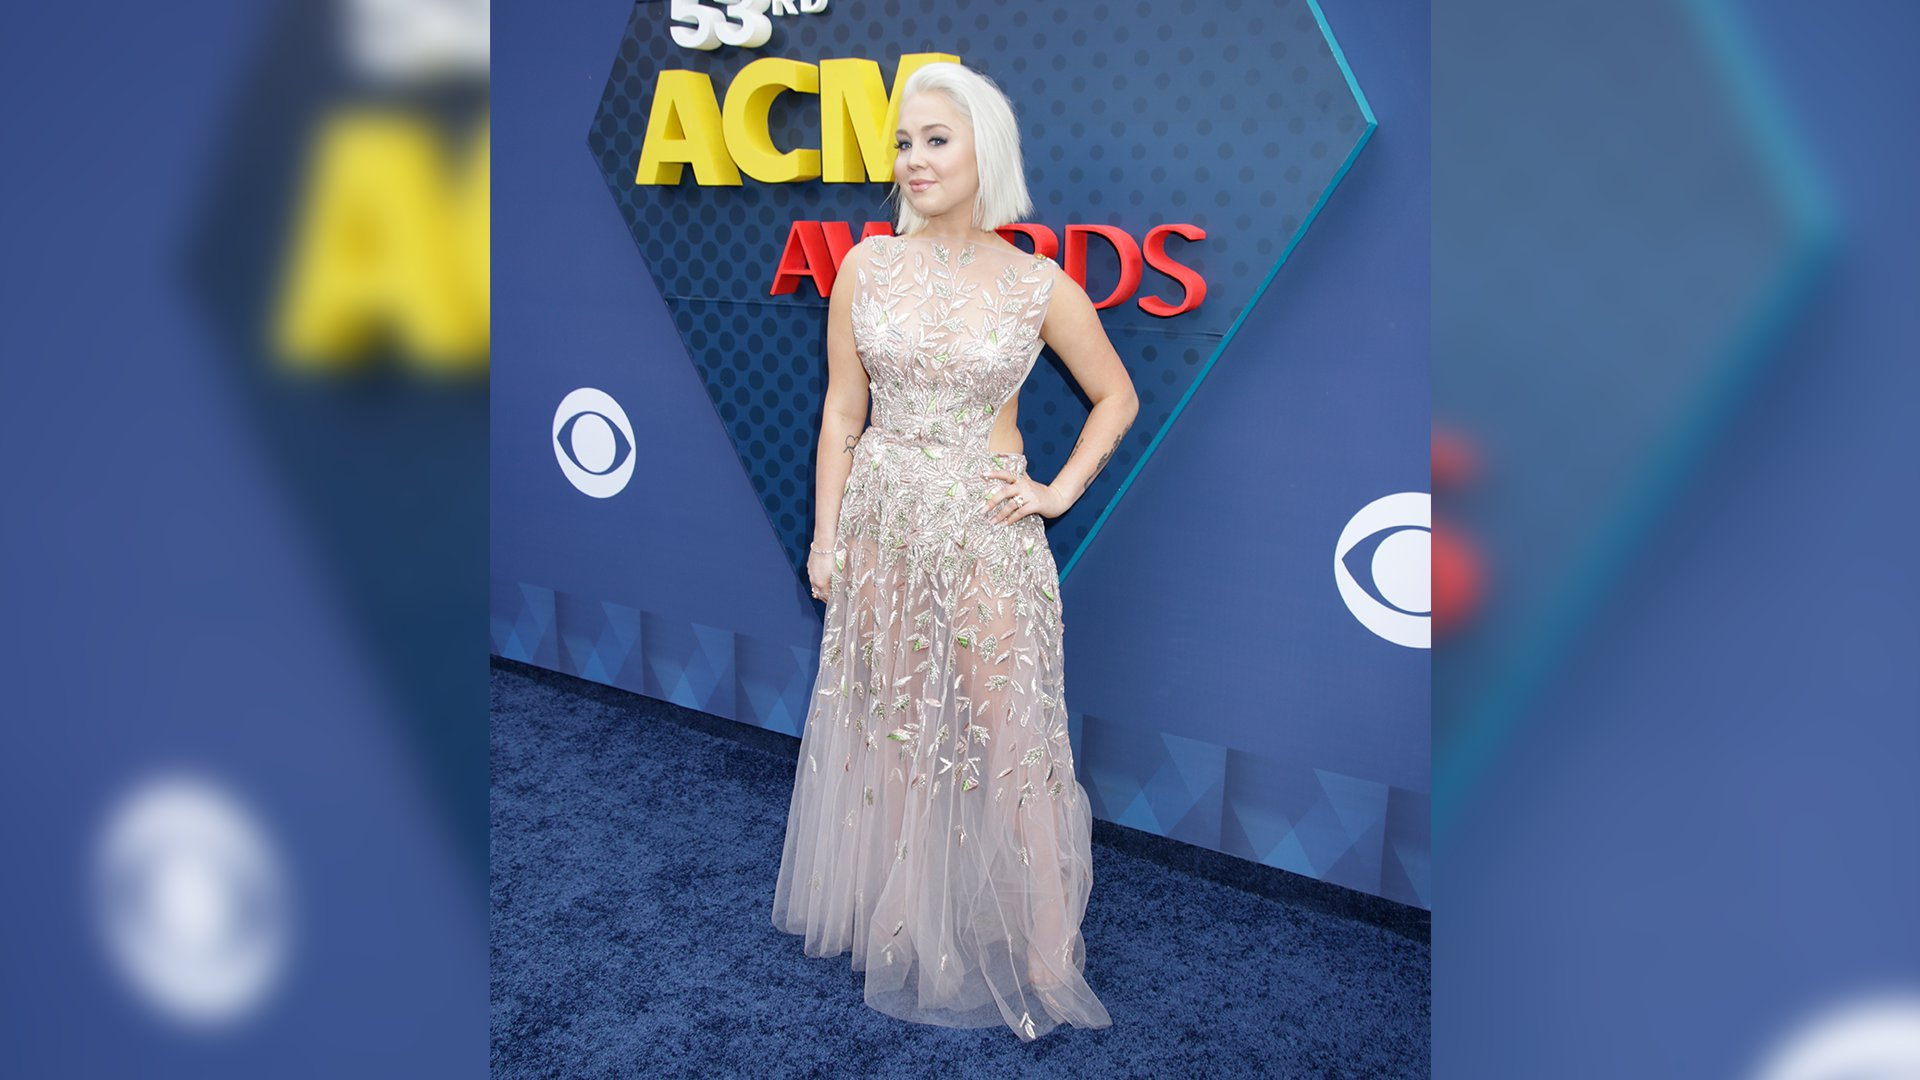 RaeLynn pairs her blunt blond bob with a floor-length, peek-a-boo evening gown.